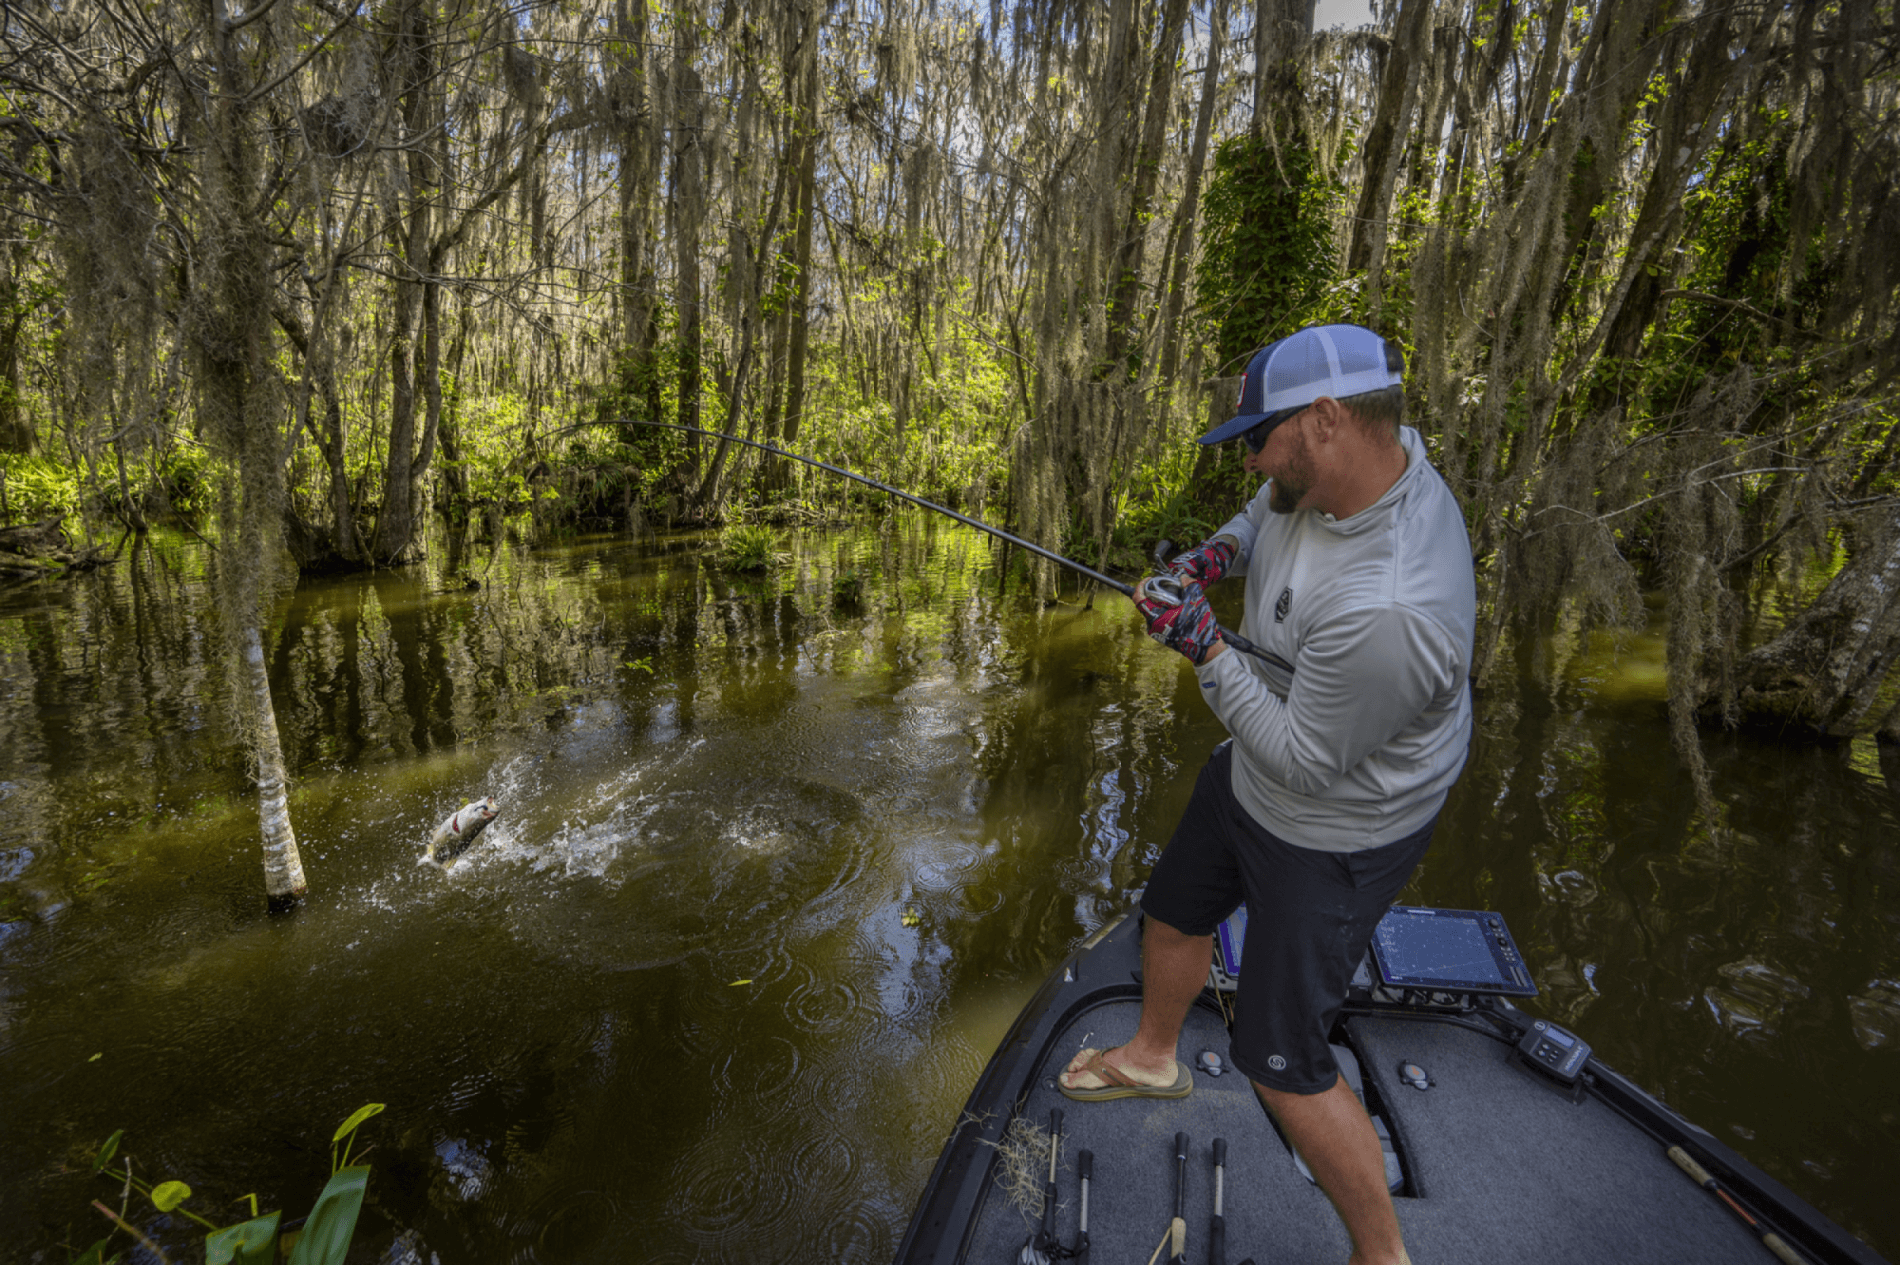 man fishing in a canal catching a largemouth bass